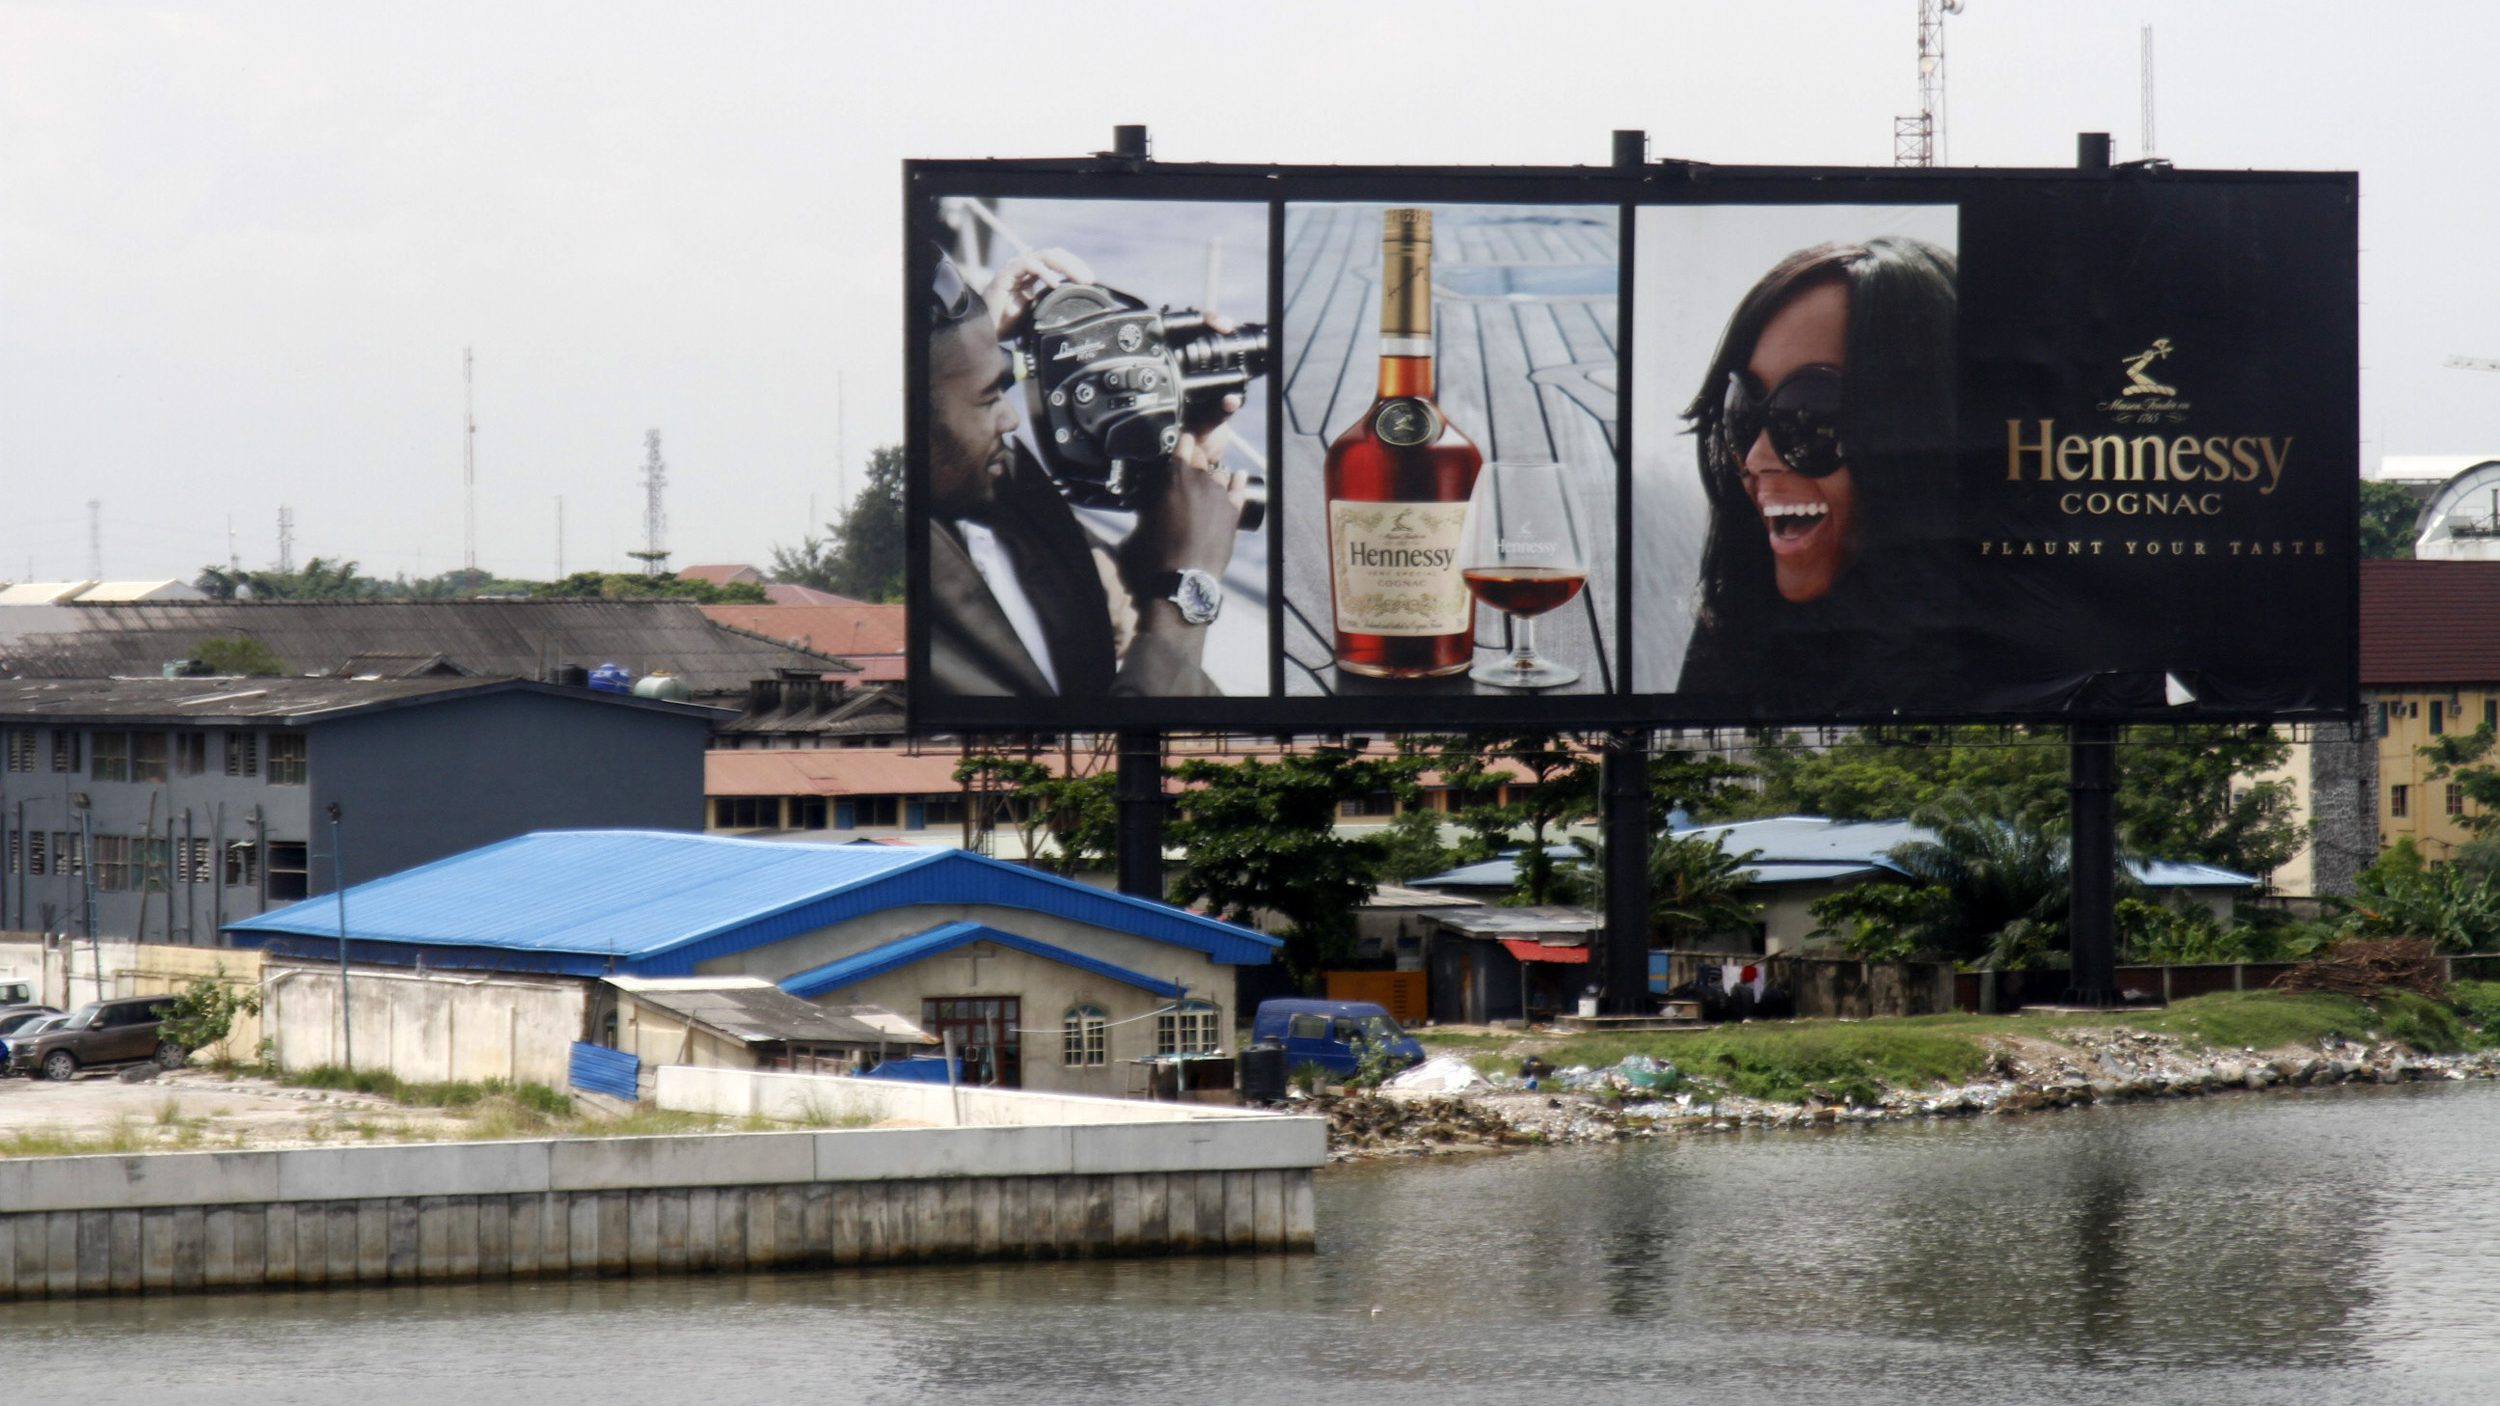 A billboard advertising Hennessy cognac is pictured near the lagoon in Ikoyi district in Lagos